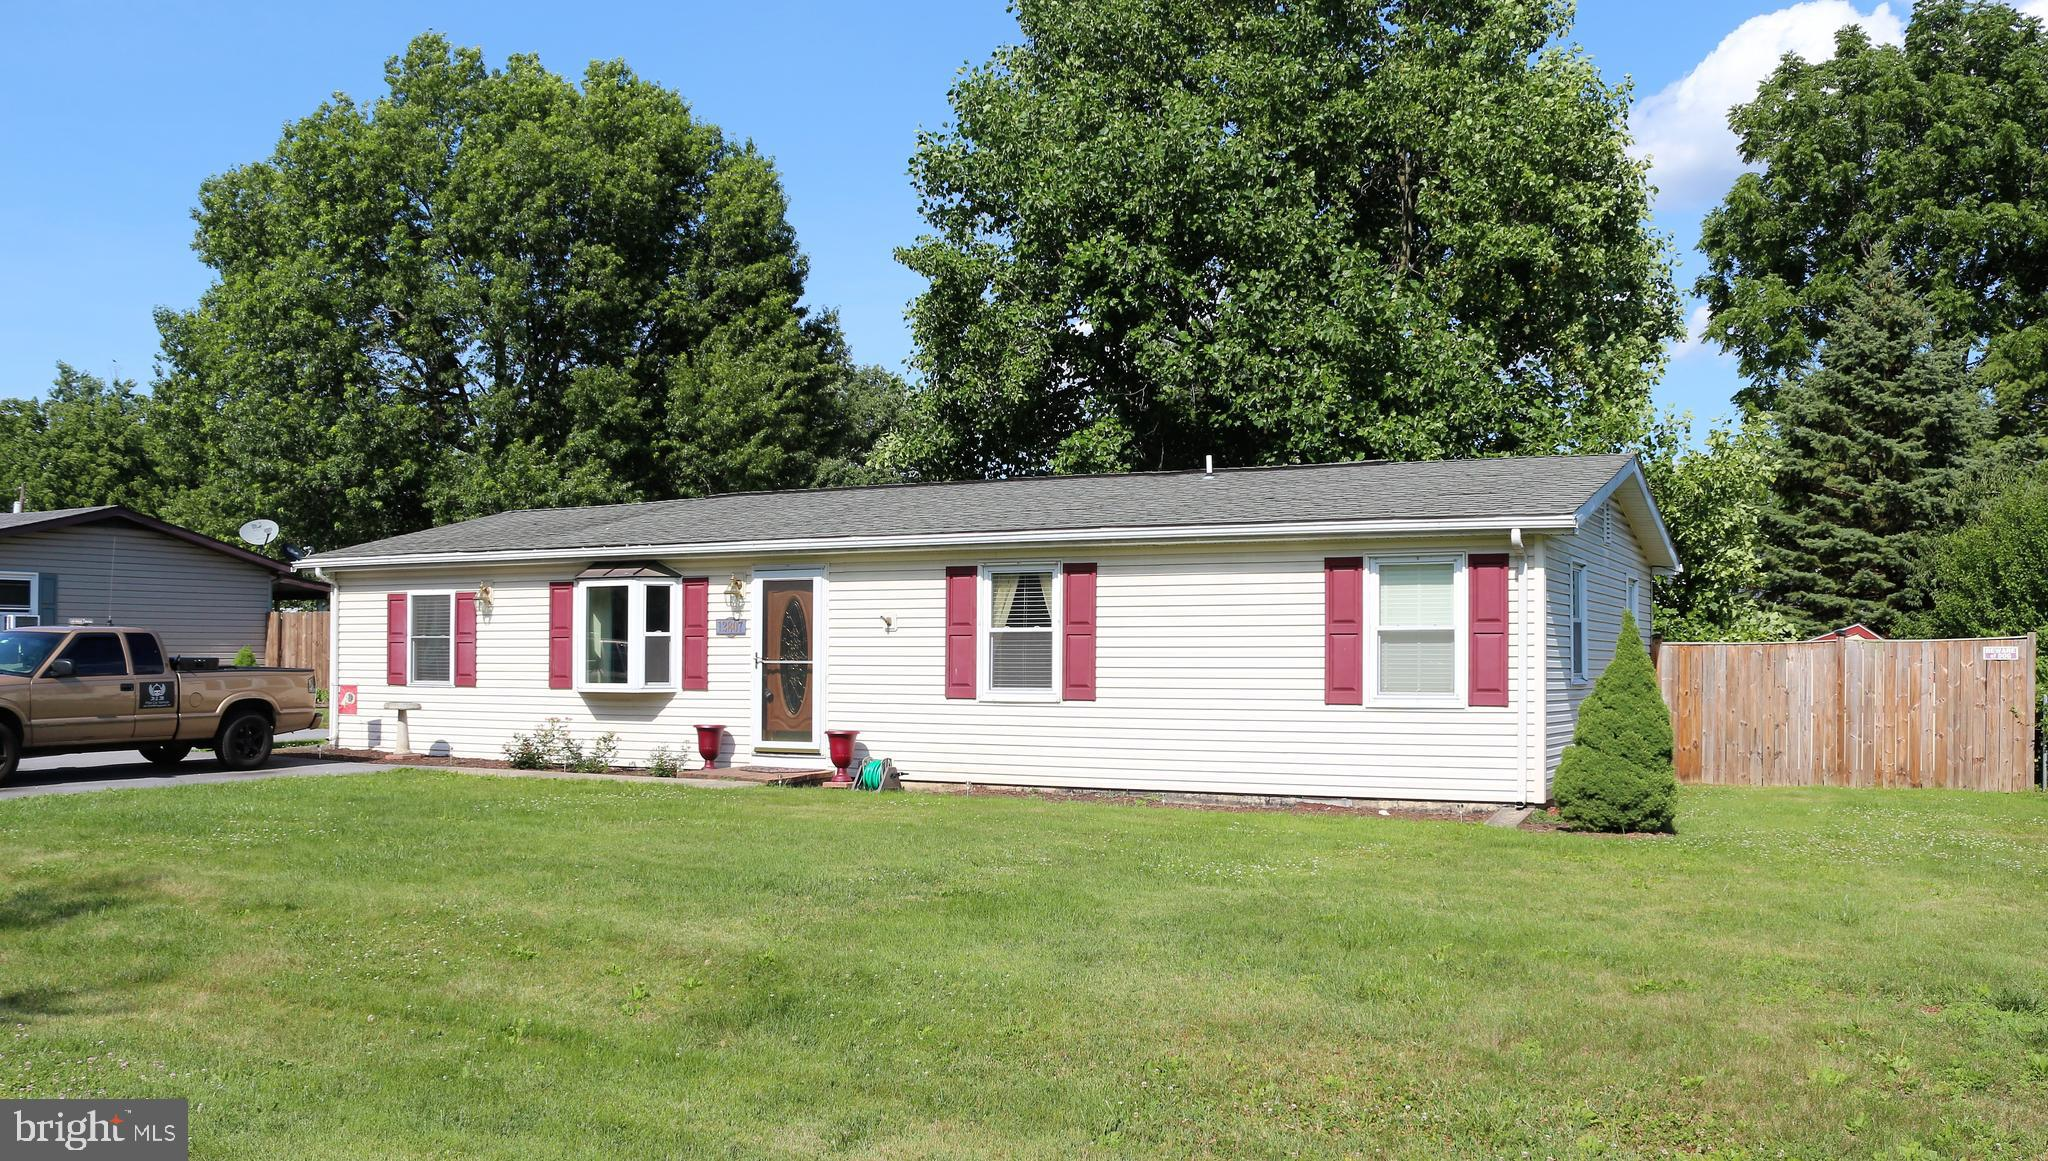 13807 DISTANT VIEW AVENUE, MAUGANSVILLE, MD 21767